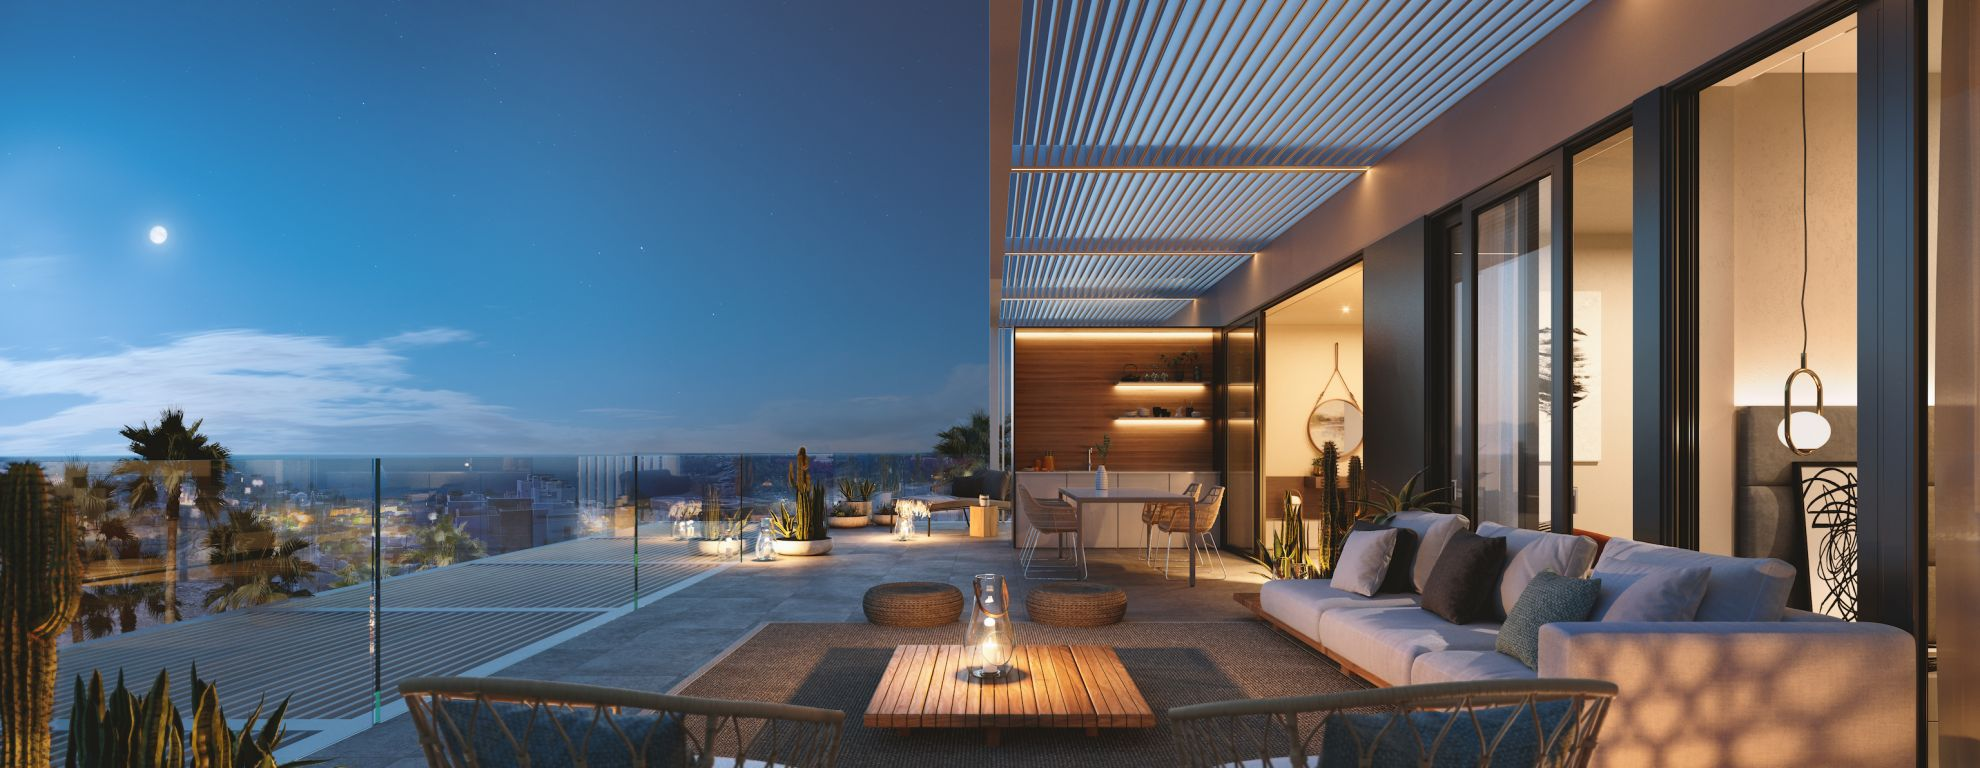 2 and 3 bedroom penthouse-style apartments with big terraces overlookg the sea. House 5 12